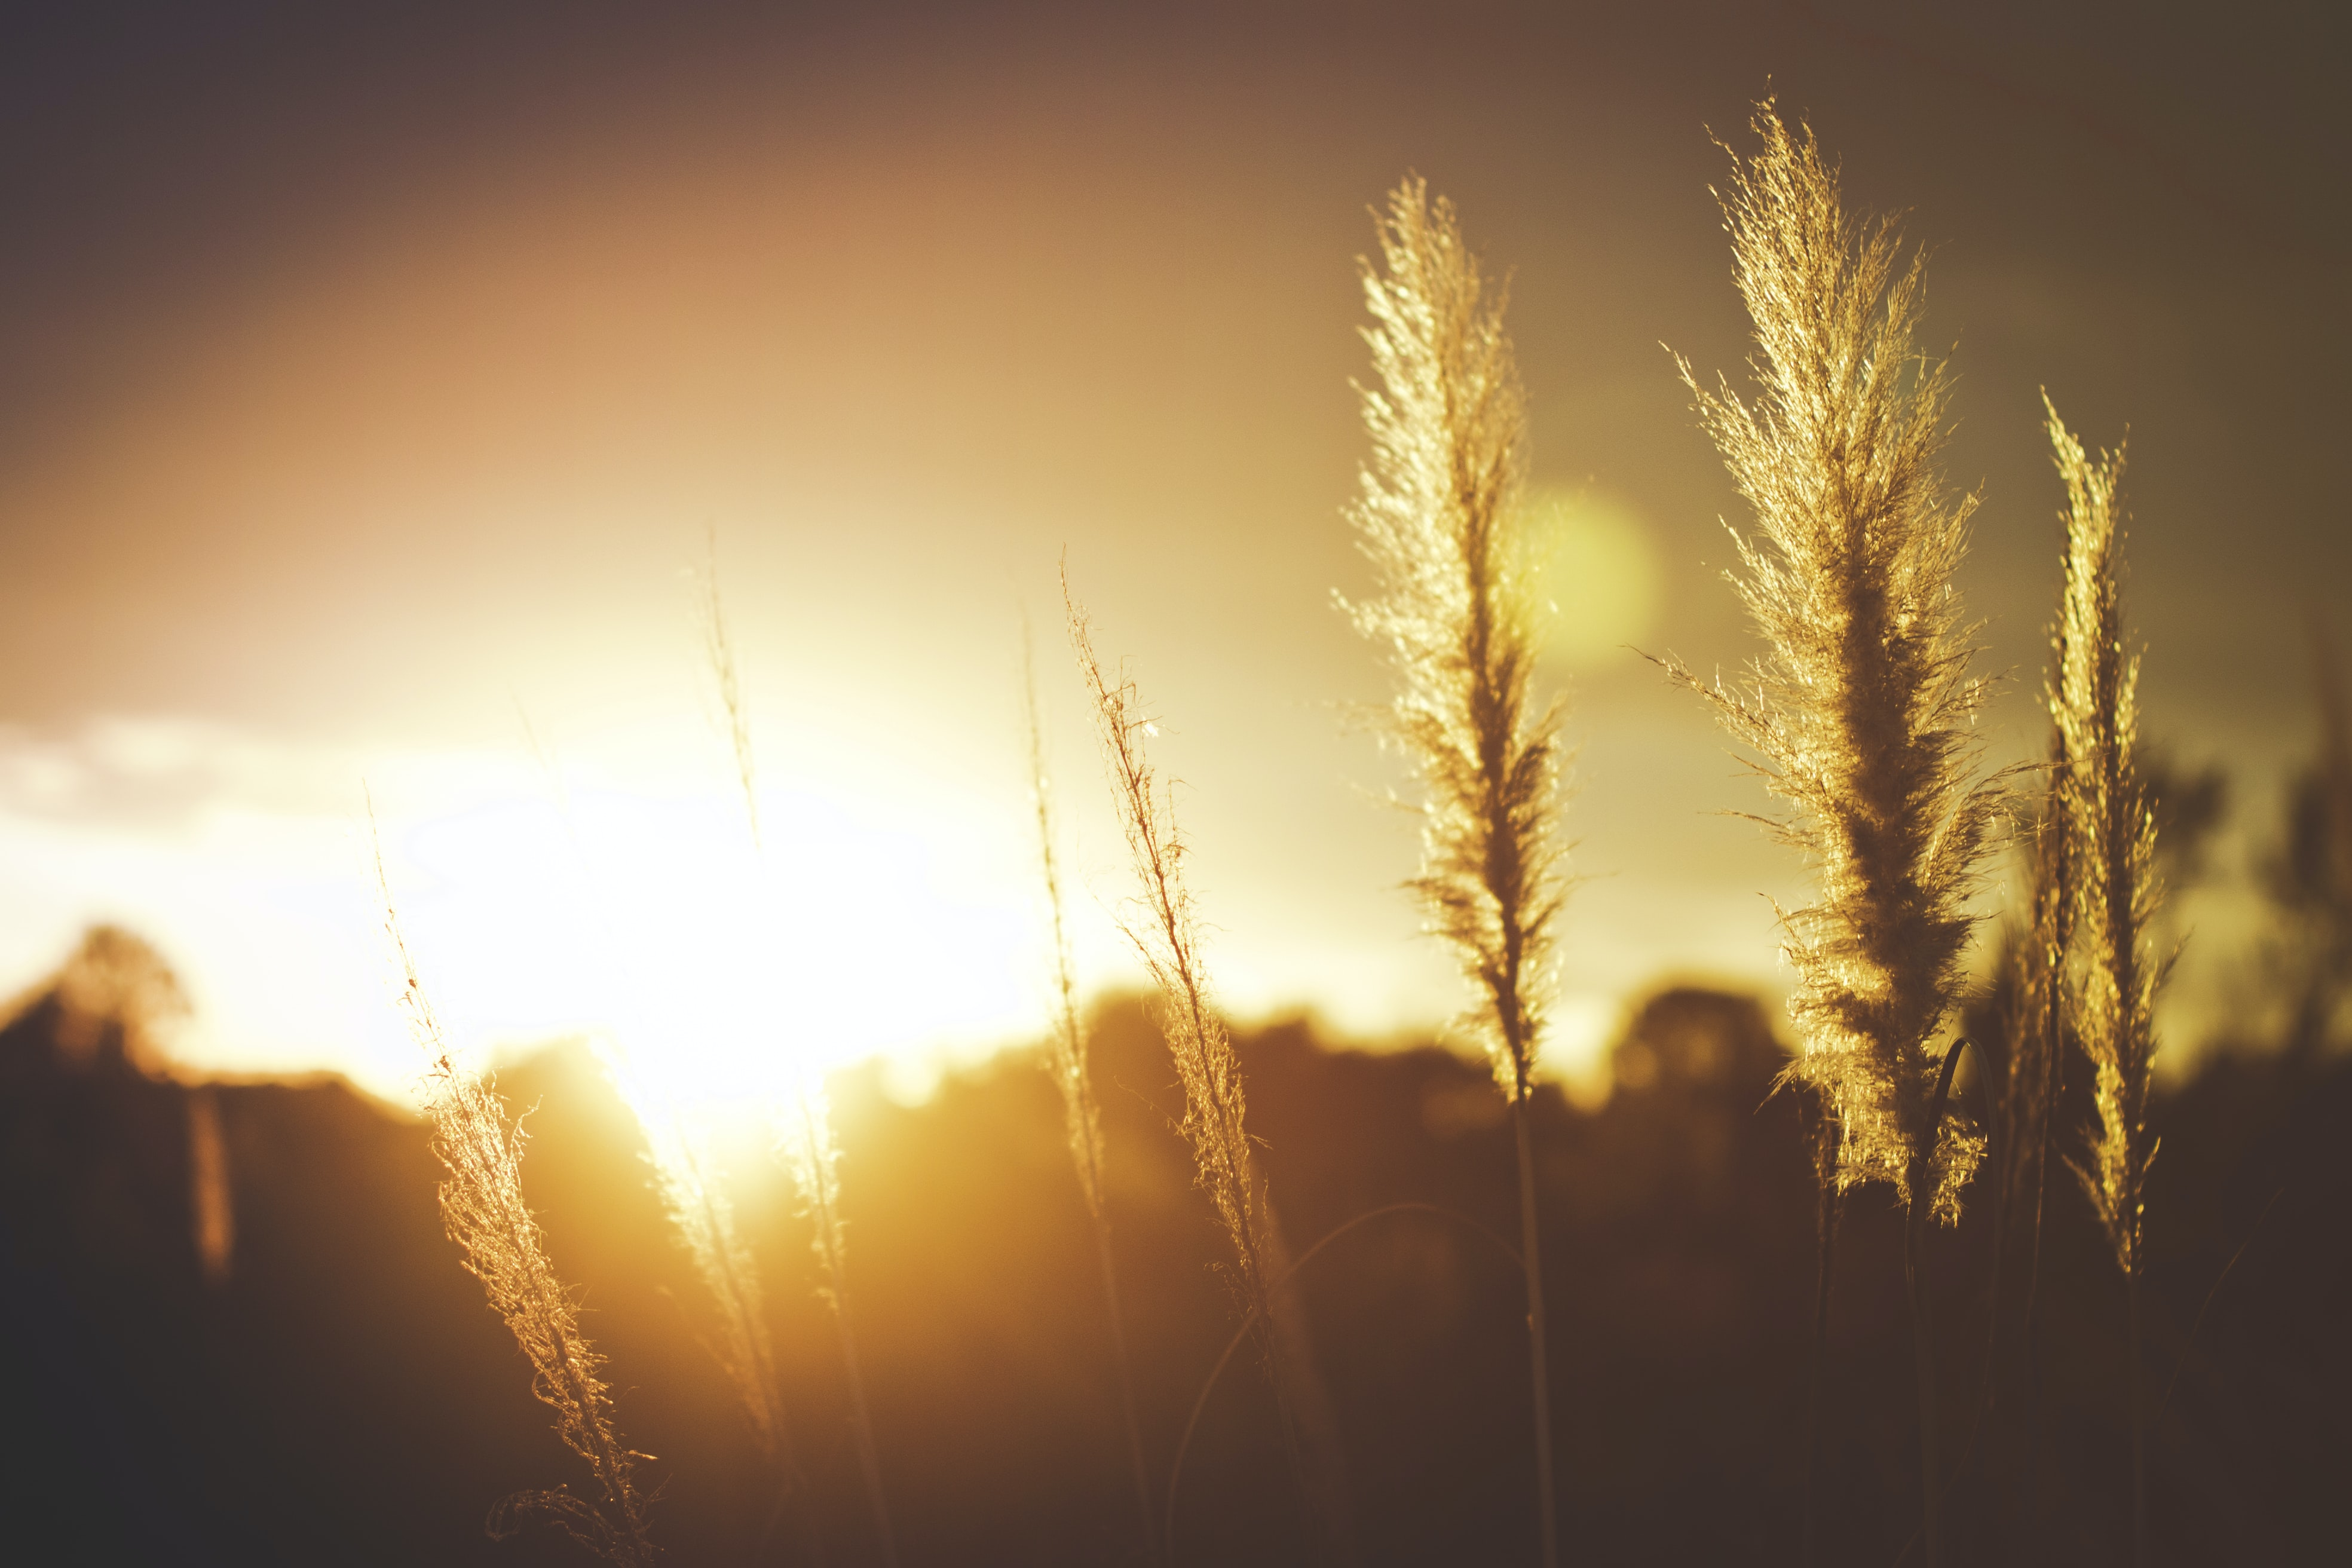 A wheat field with a sun flare during golden hour in Vandenberg Village